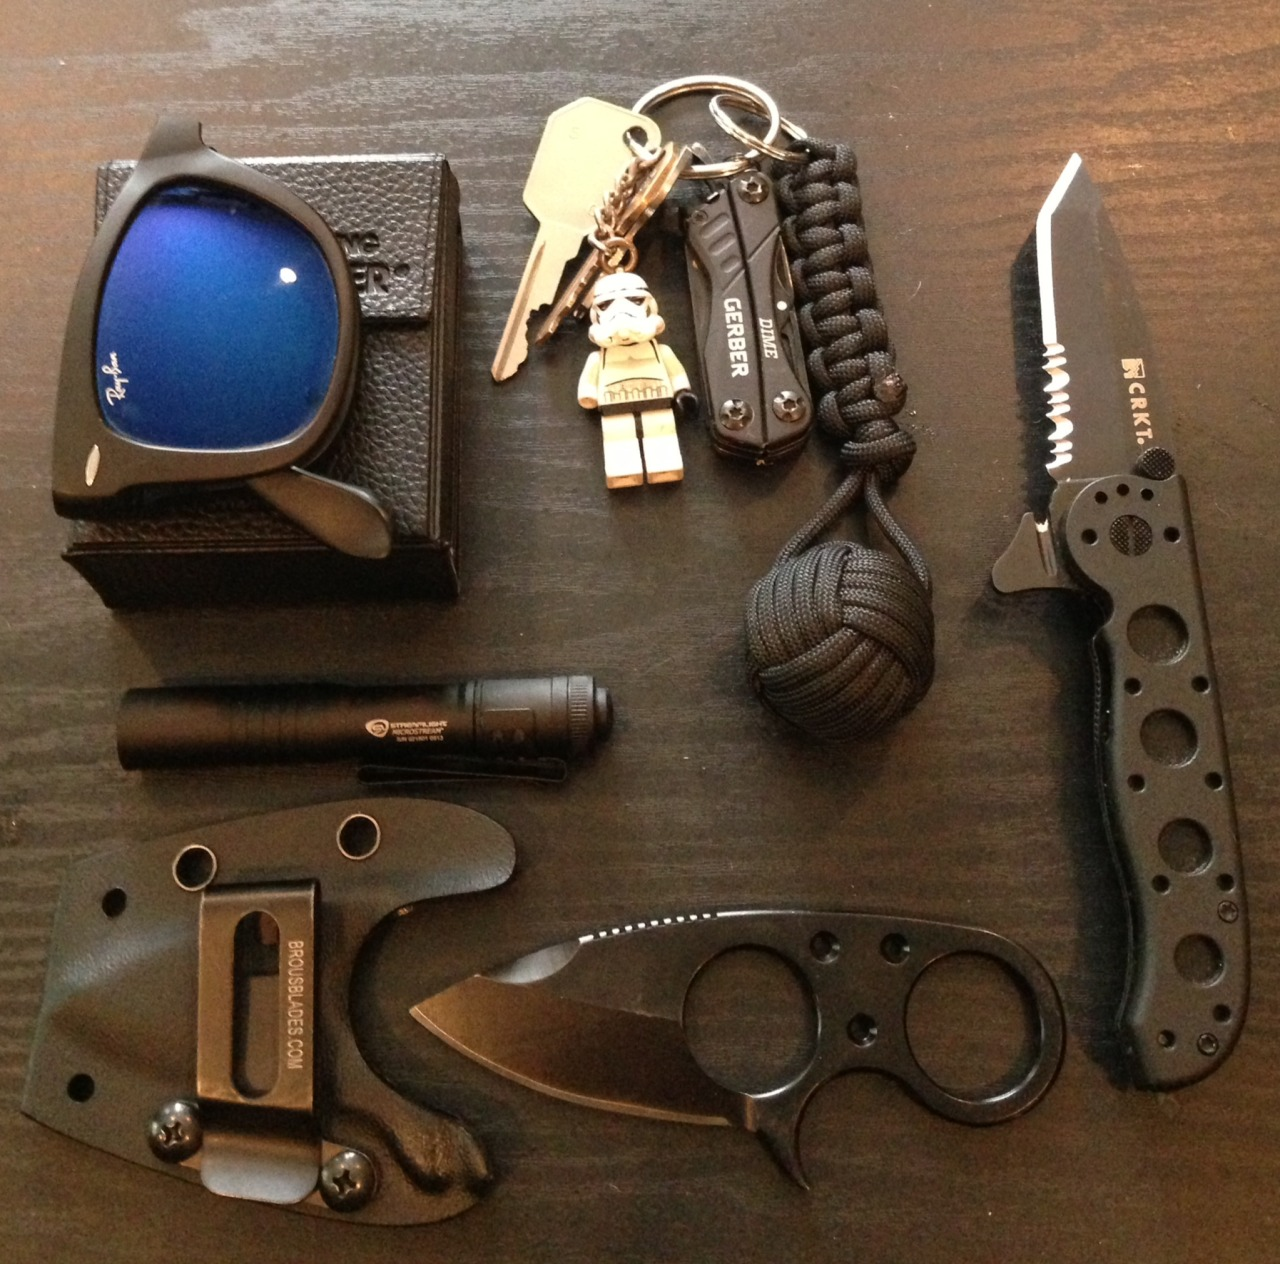 realworldedc :       Tyler   strikes again!      Matte Black Ray Ban Folding Wayfarer   Keys, Stormtrooper Lego Figure, Gerber Dime Multitool, Black Monkeyfist With One Inch Ball Bearing And Cobra Paracod Knot   Streamlight Microstream Flashlight   Brous Blades Silent Soldier V2 with Kydex Sheath   CRKT M16-12 ZLEK Flipper Knife With Safety Seatbelt Cutter And Window Breaker         http://www.dailycarry.co